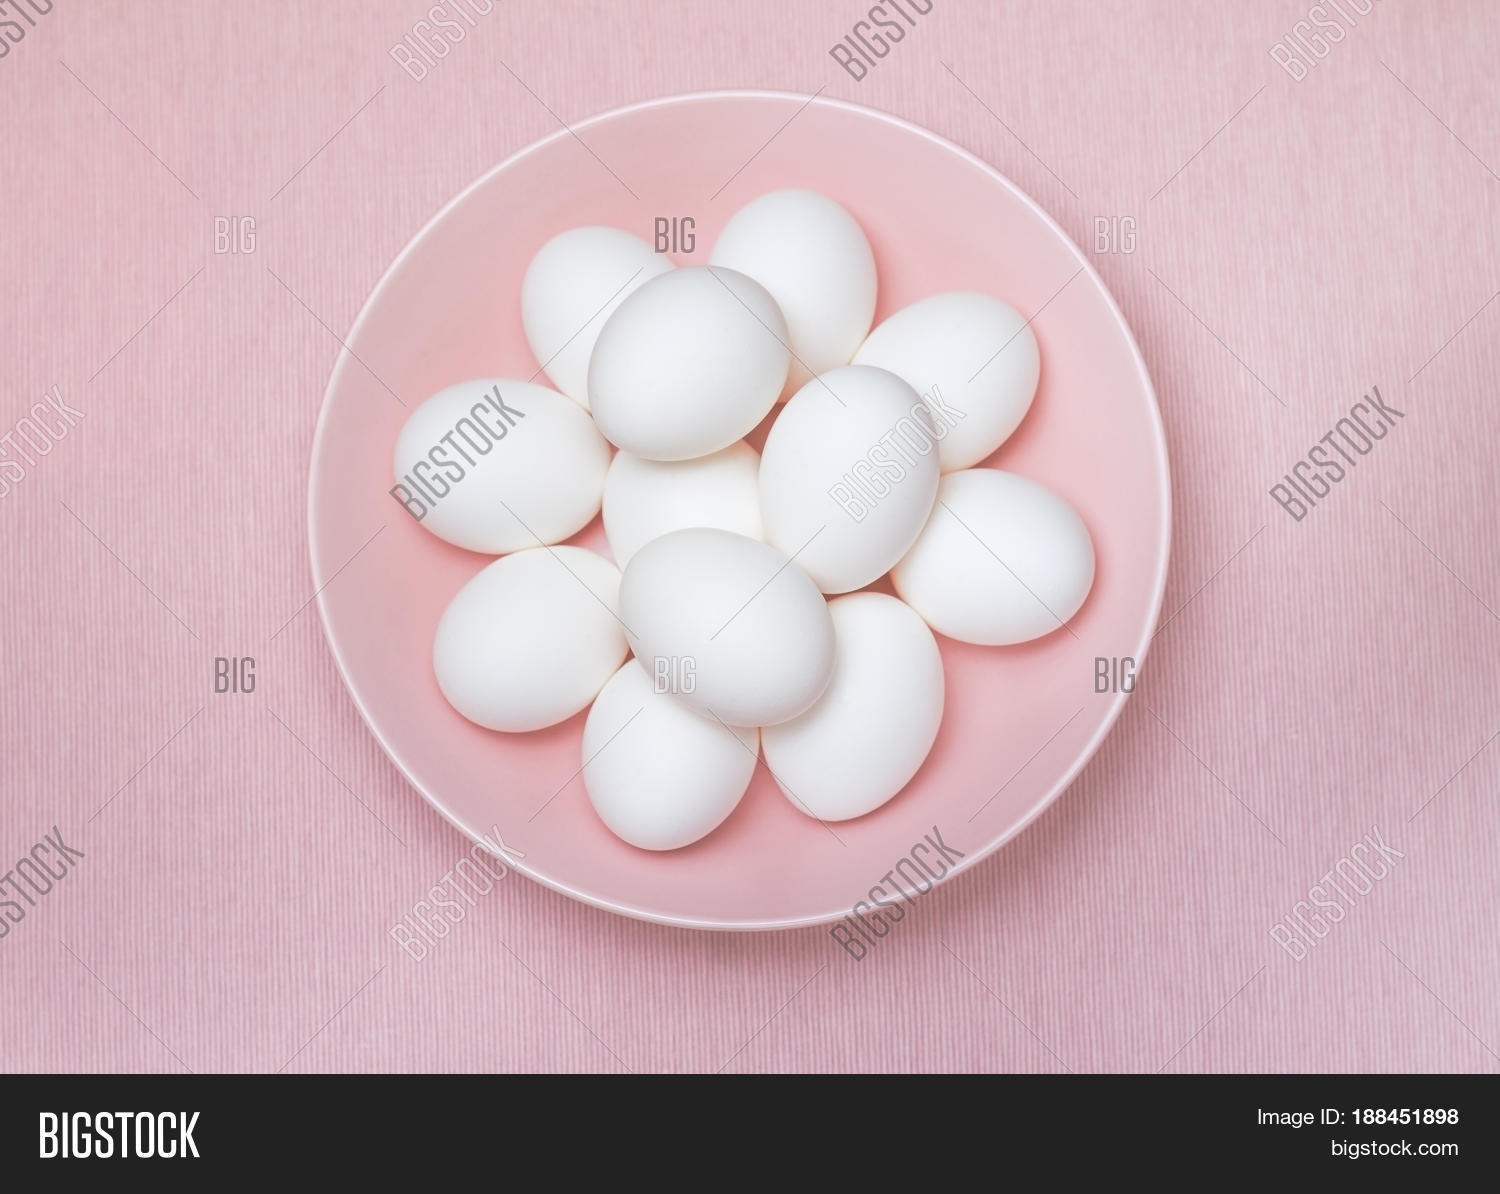 Top View Dozen White Eggs On Pink Image & Photo | Bigstock